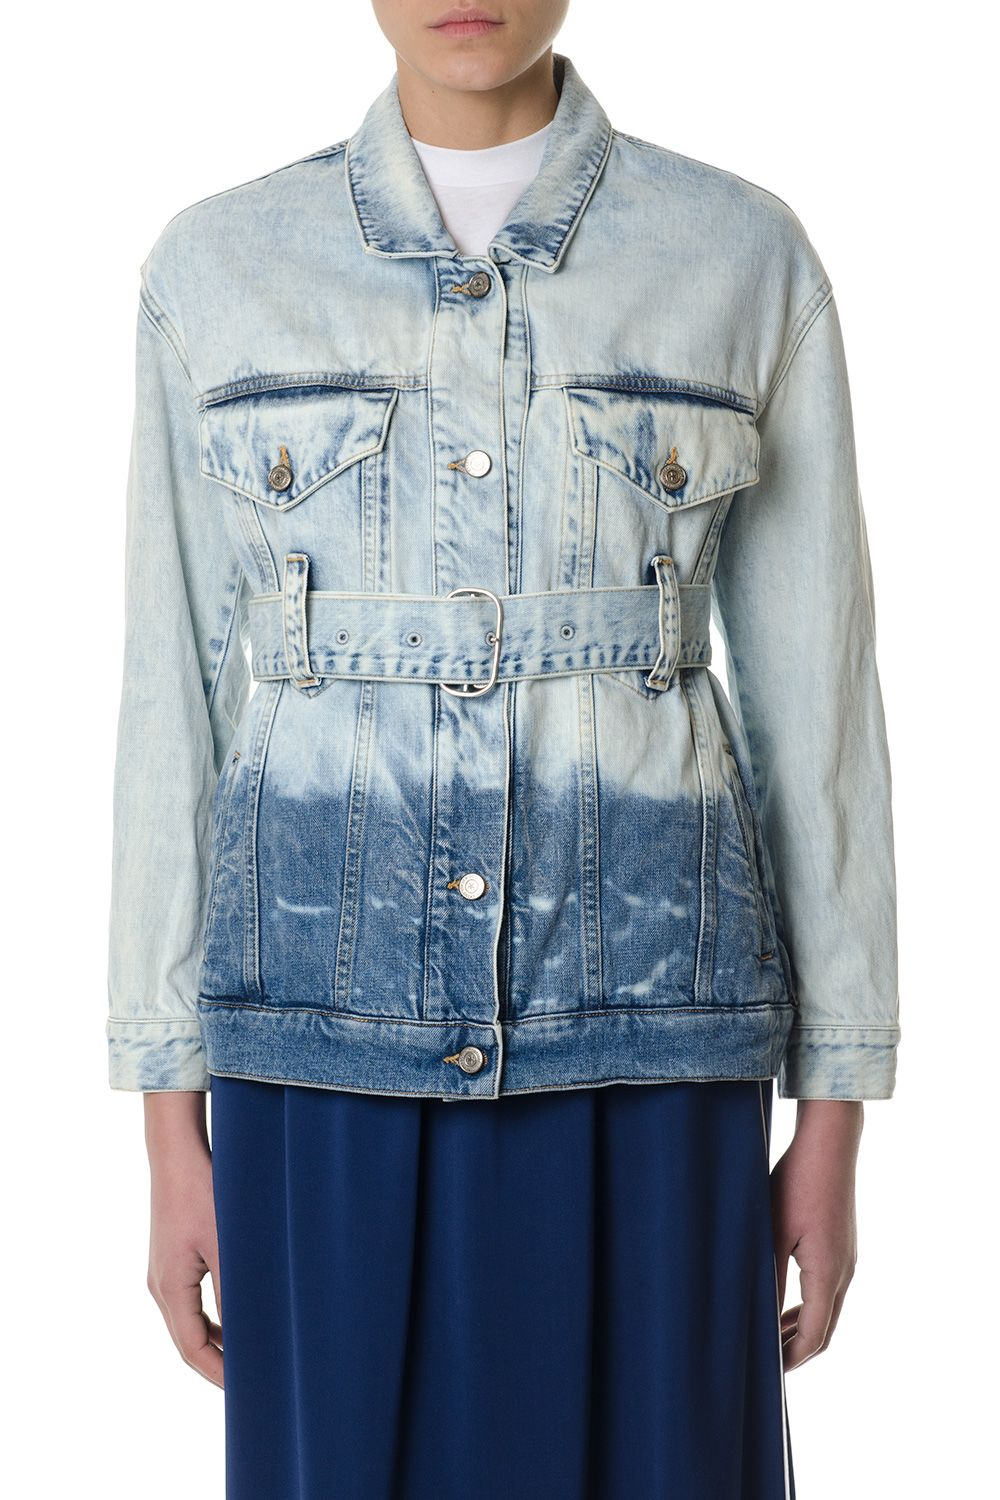 Golden Goose Cotton Denim Stonewash Jacket